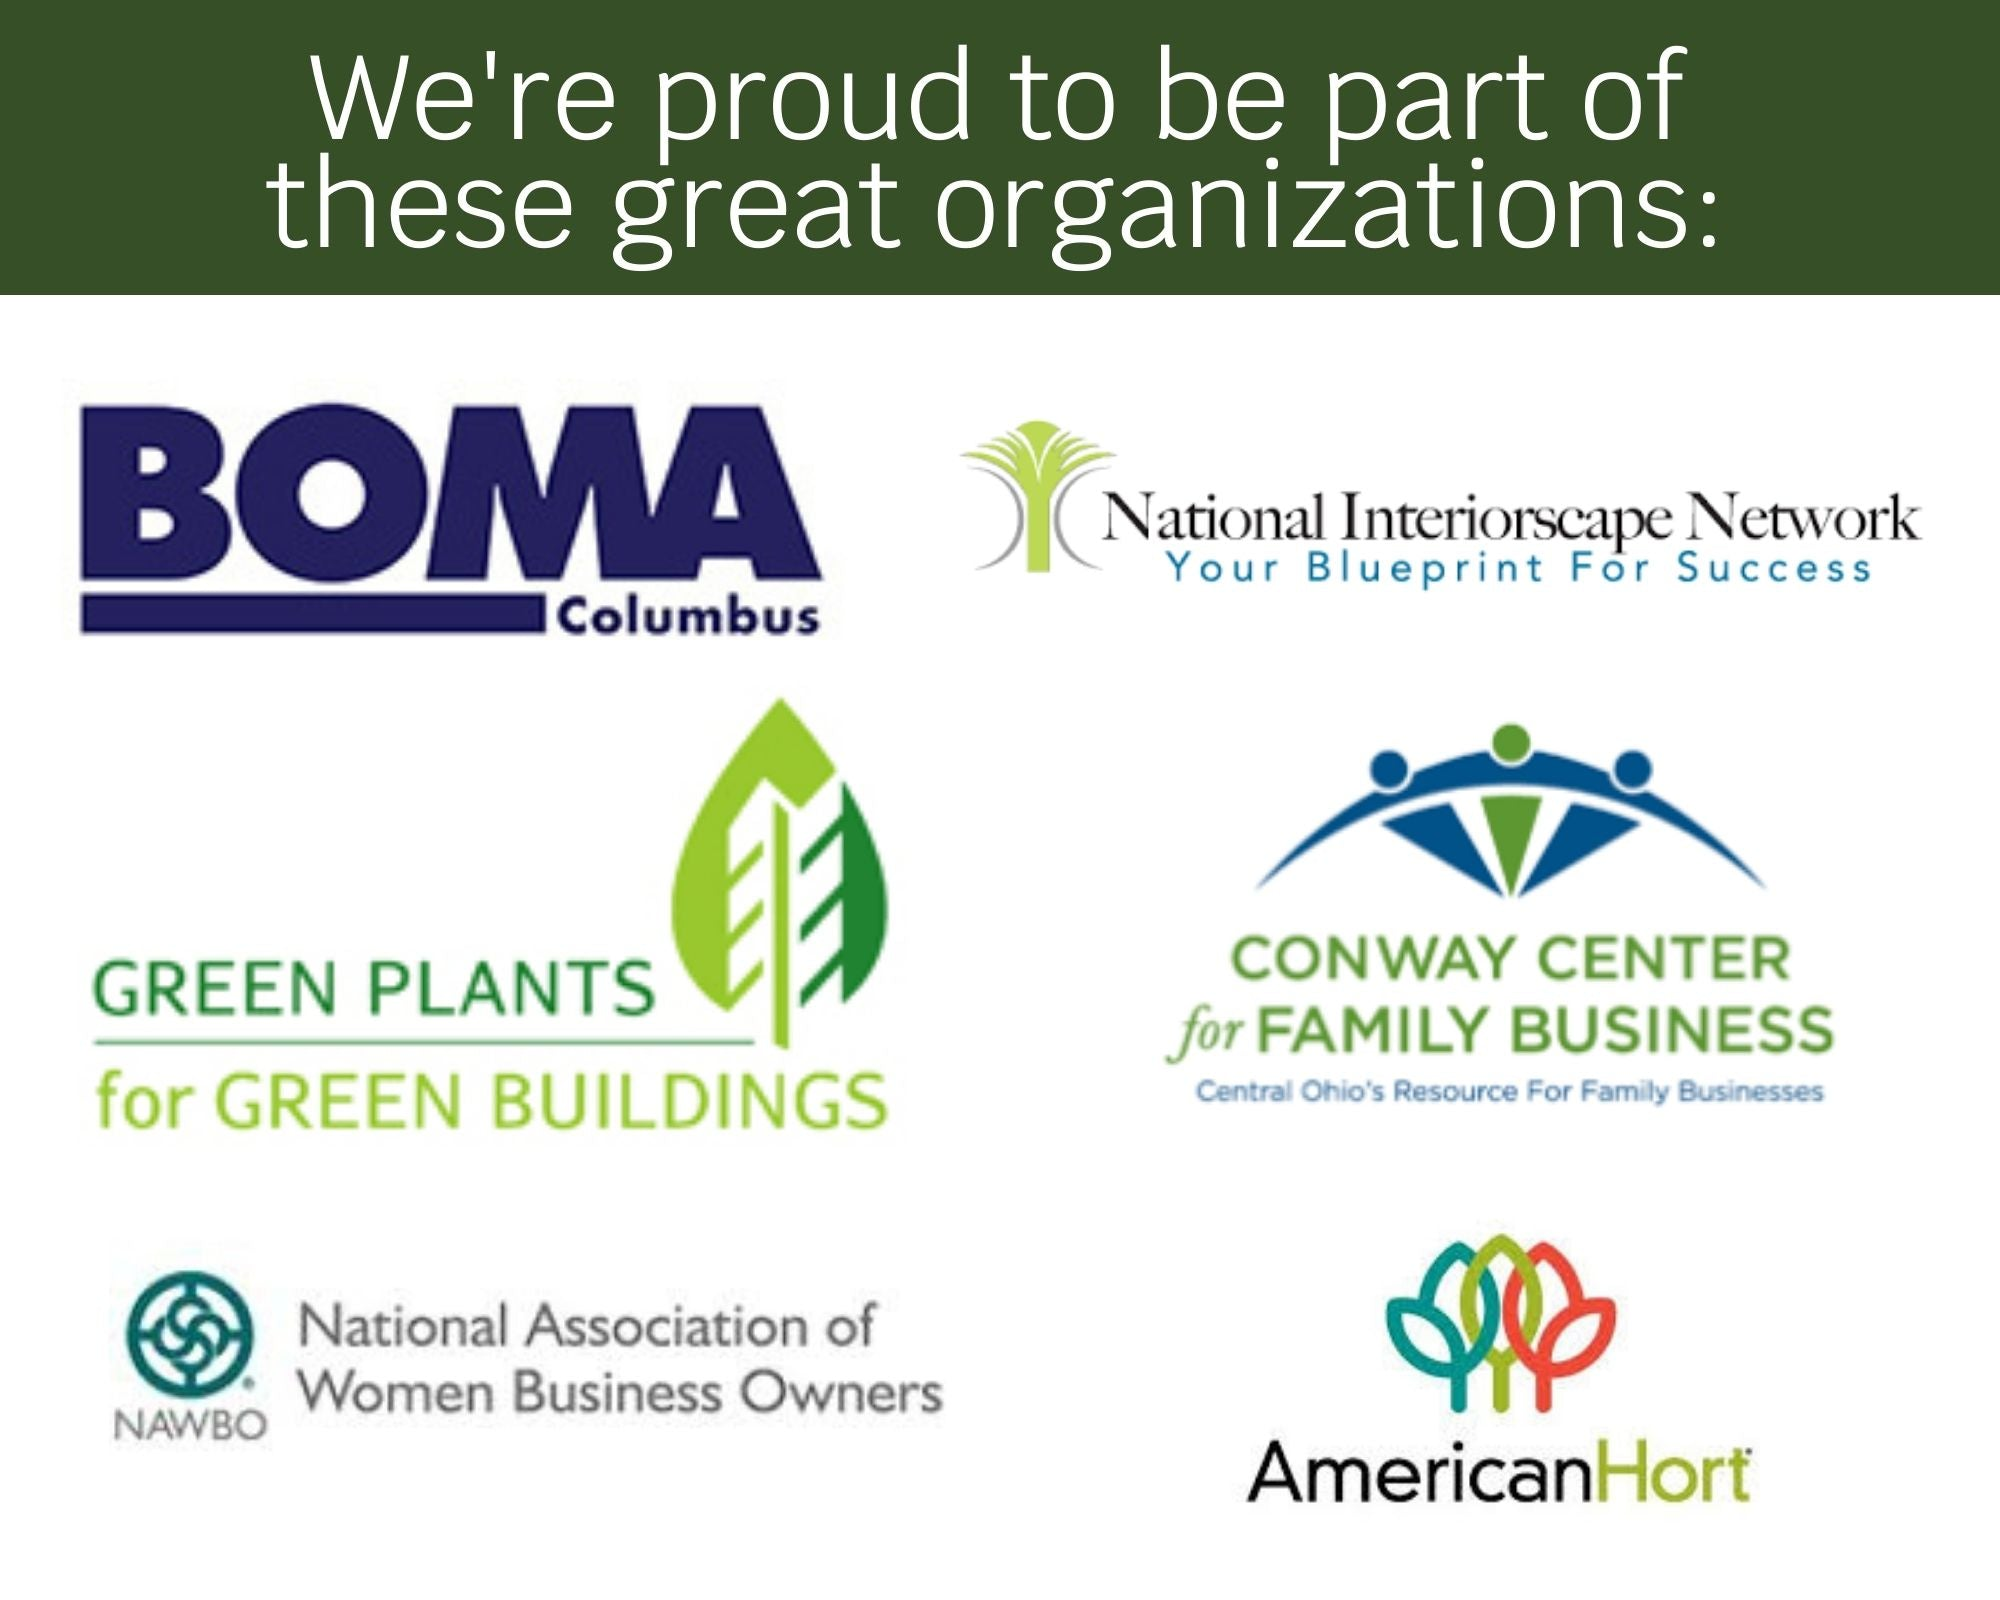 Members of BOMA columbus, green plants for green buildings, NAWBO, american hort, national interiorscapes network, conway center for family business, interior plants in offices, moss walls in offices, interior plant services